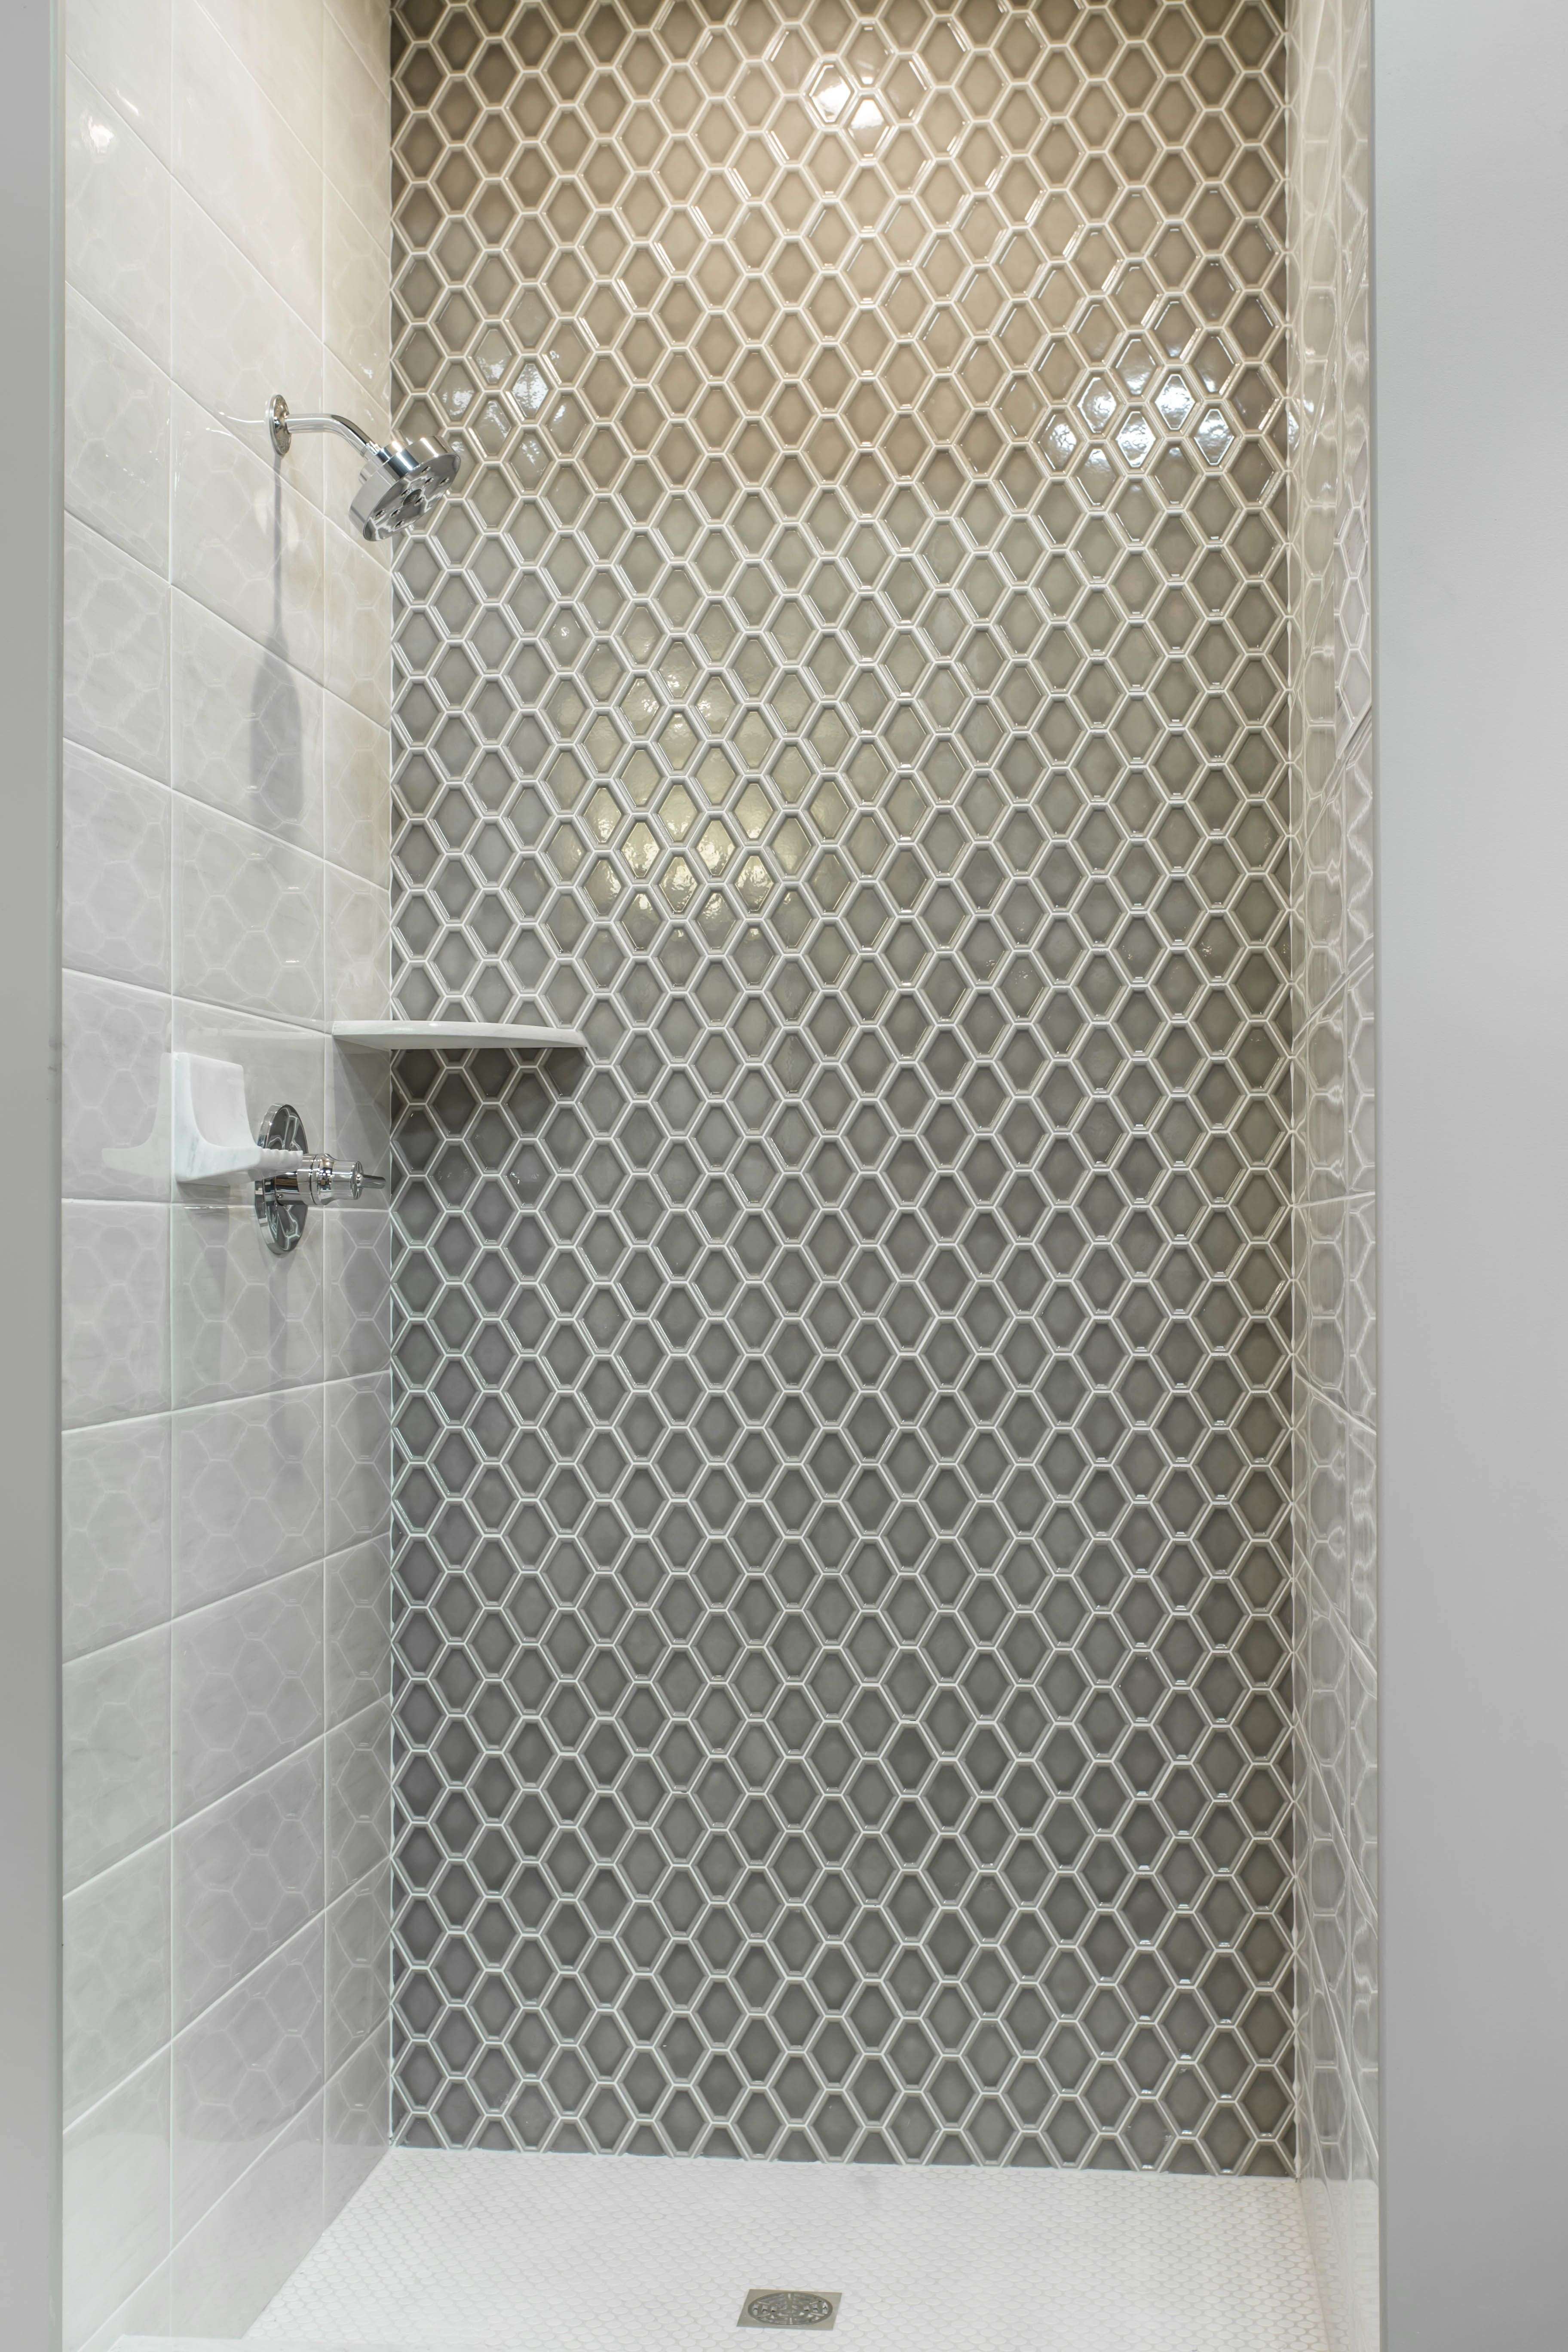 The Idea Make A Big Statement In A Small Space With Bold Geometric Patterns I Wouldn T Use These T Unique Bathroom Tiles Tile Bathroom Mosaic Bathroom Tile